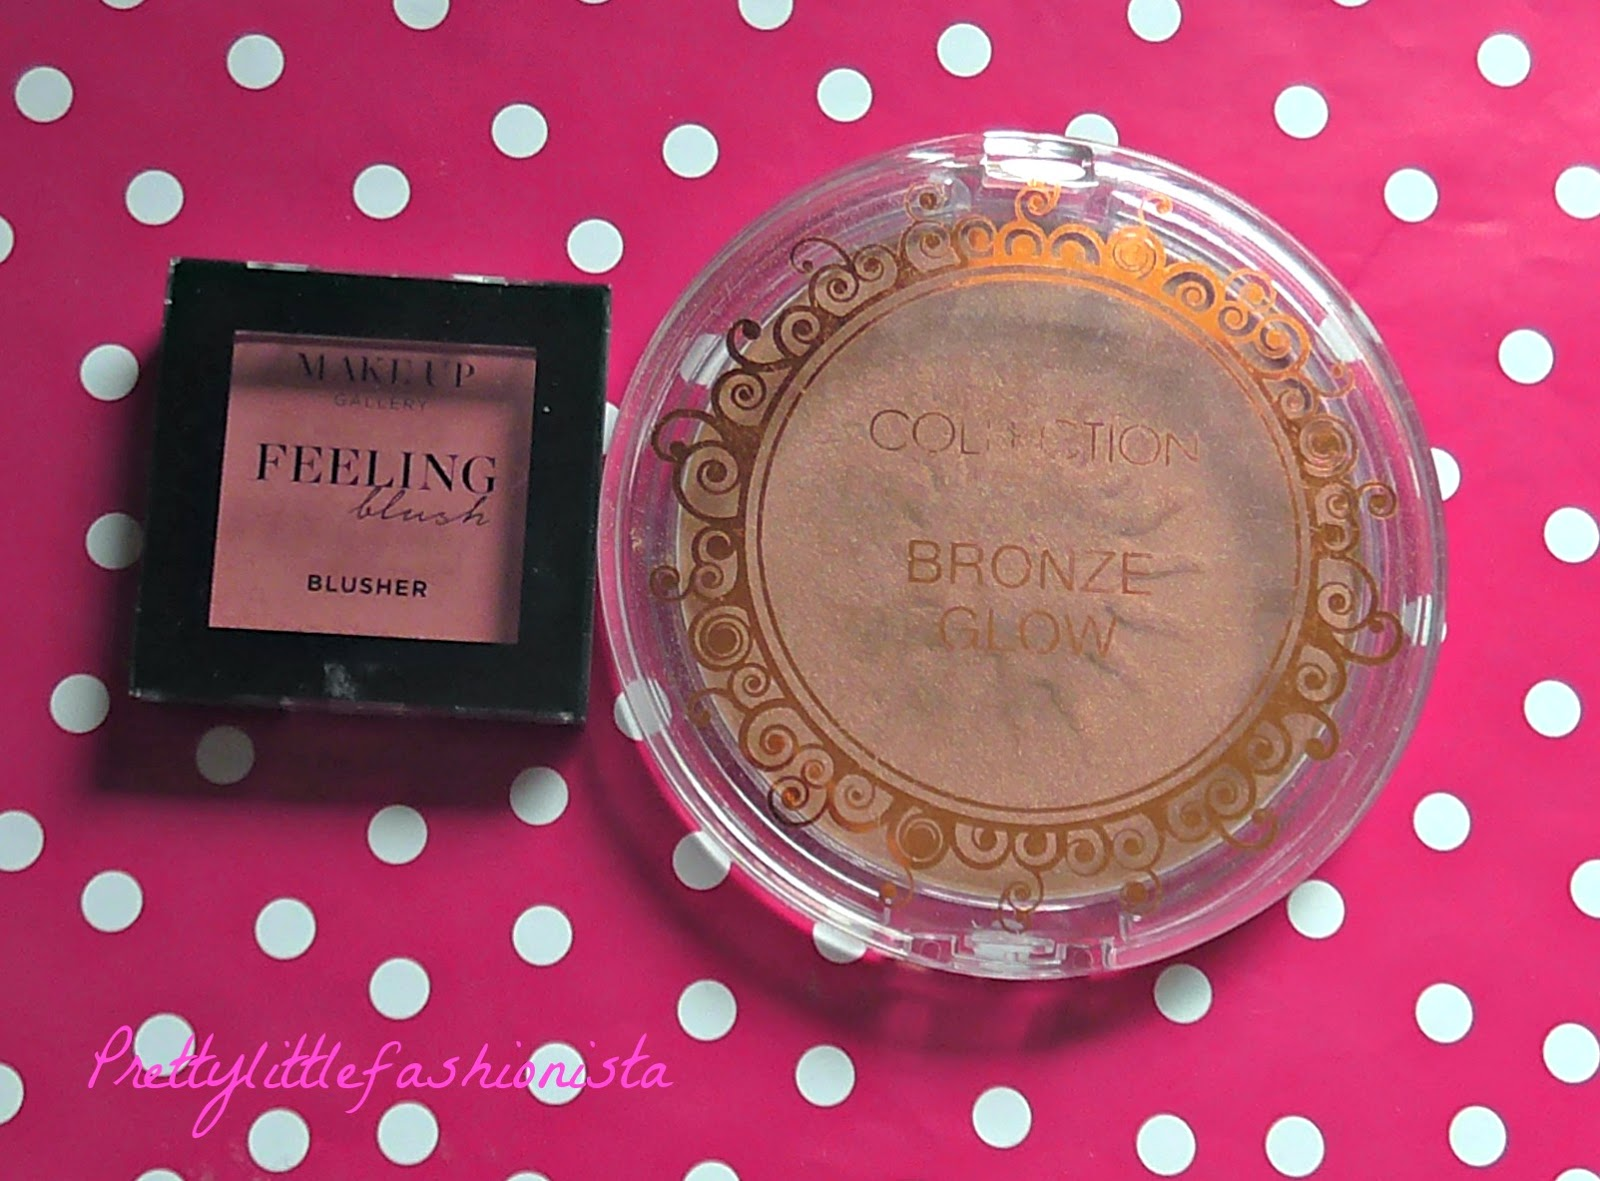 Makeup Gallery Blush in Candyfloss, Collection Bronze Glow in Sunkissed